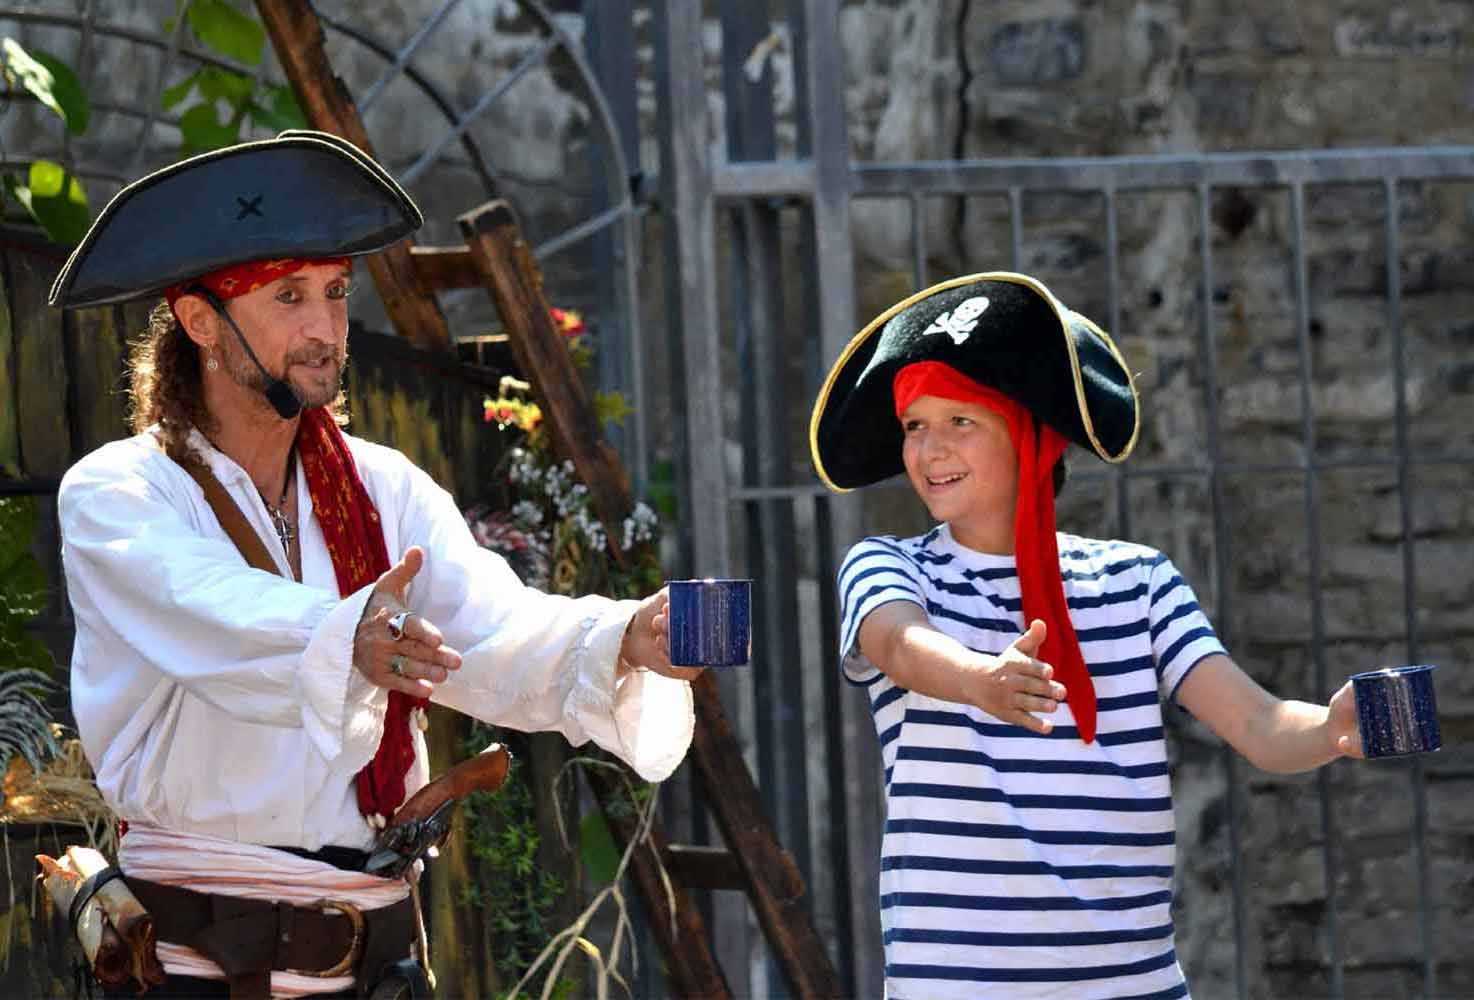 Spectacle pirate du Capitaine Loran avec un moussaillon